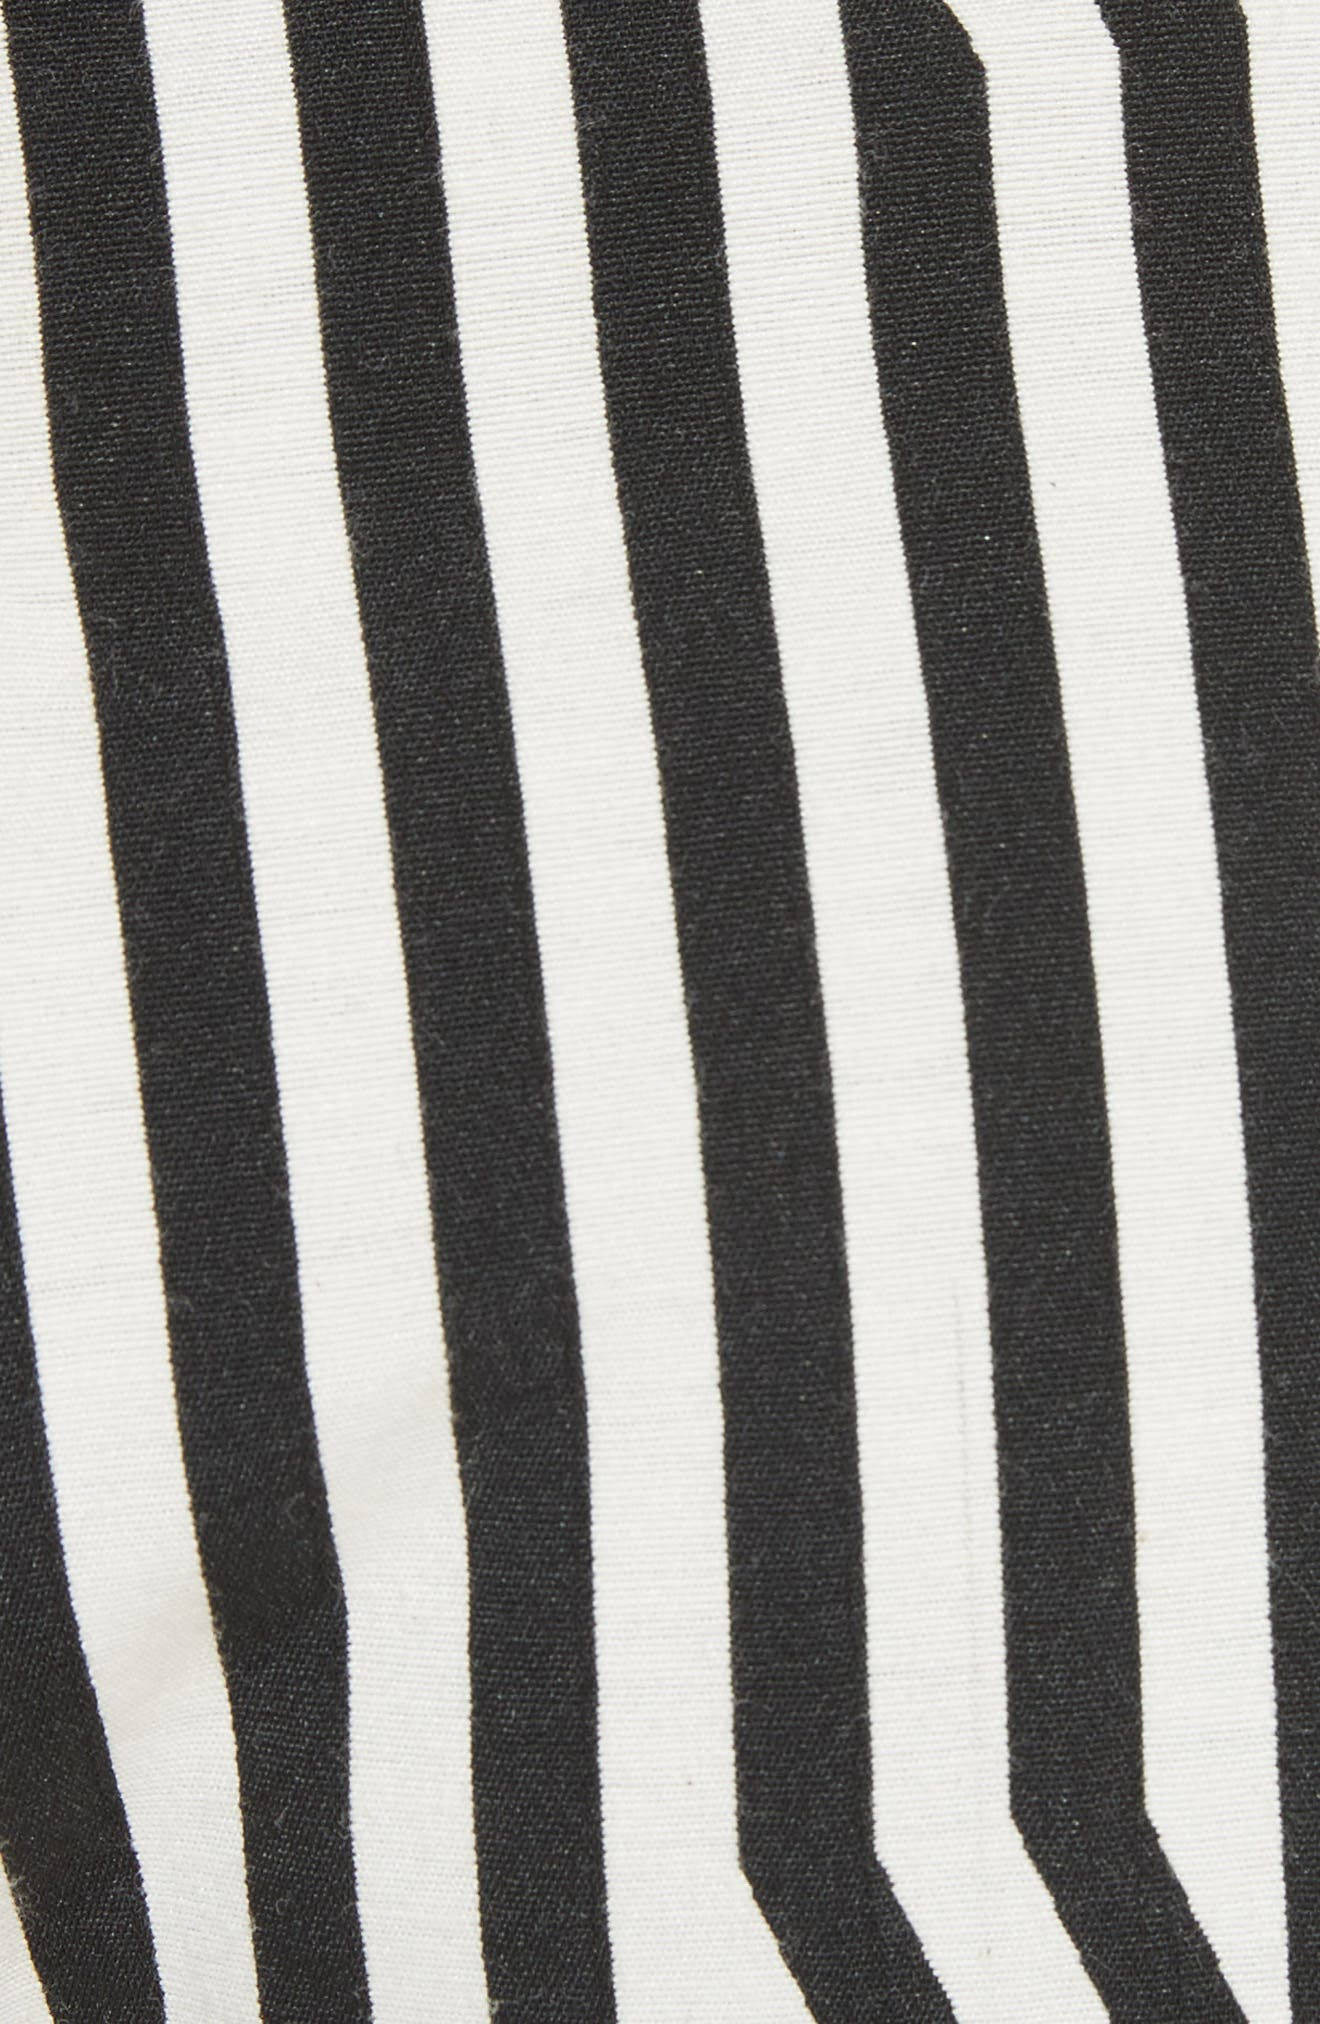 Abstract Stripe Lace-Up Shorts,                             Alternate thumbnail 5, color,                             Black/ White